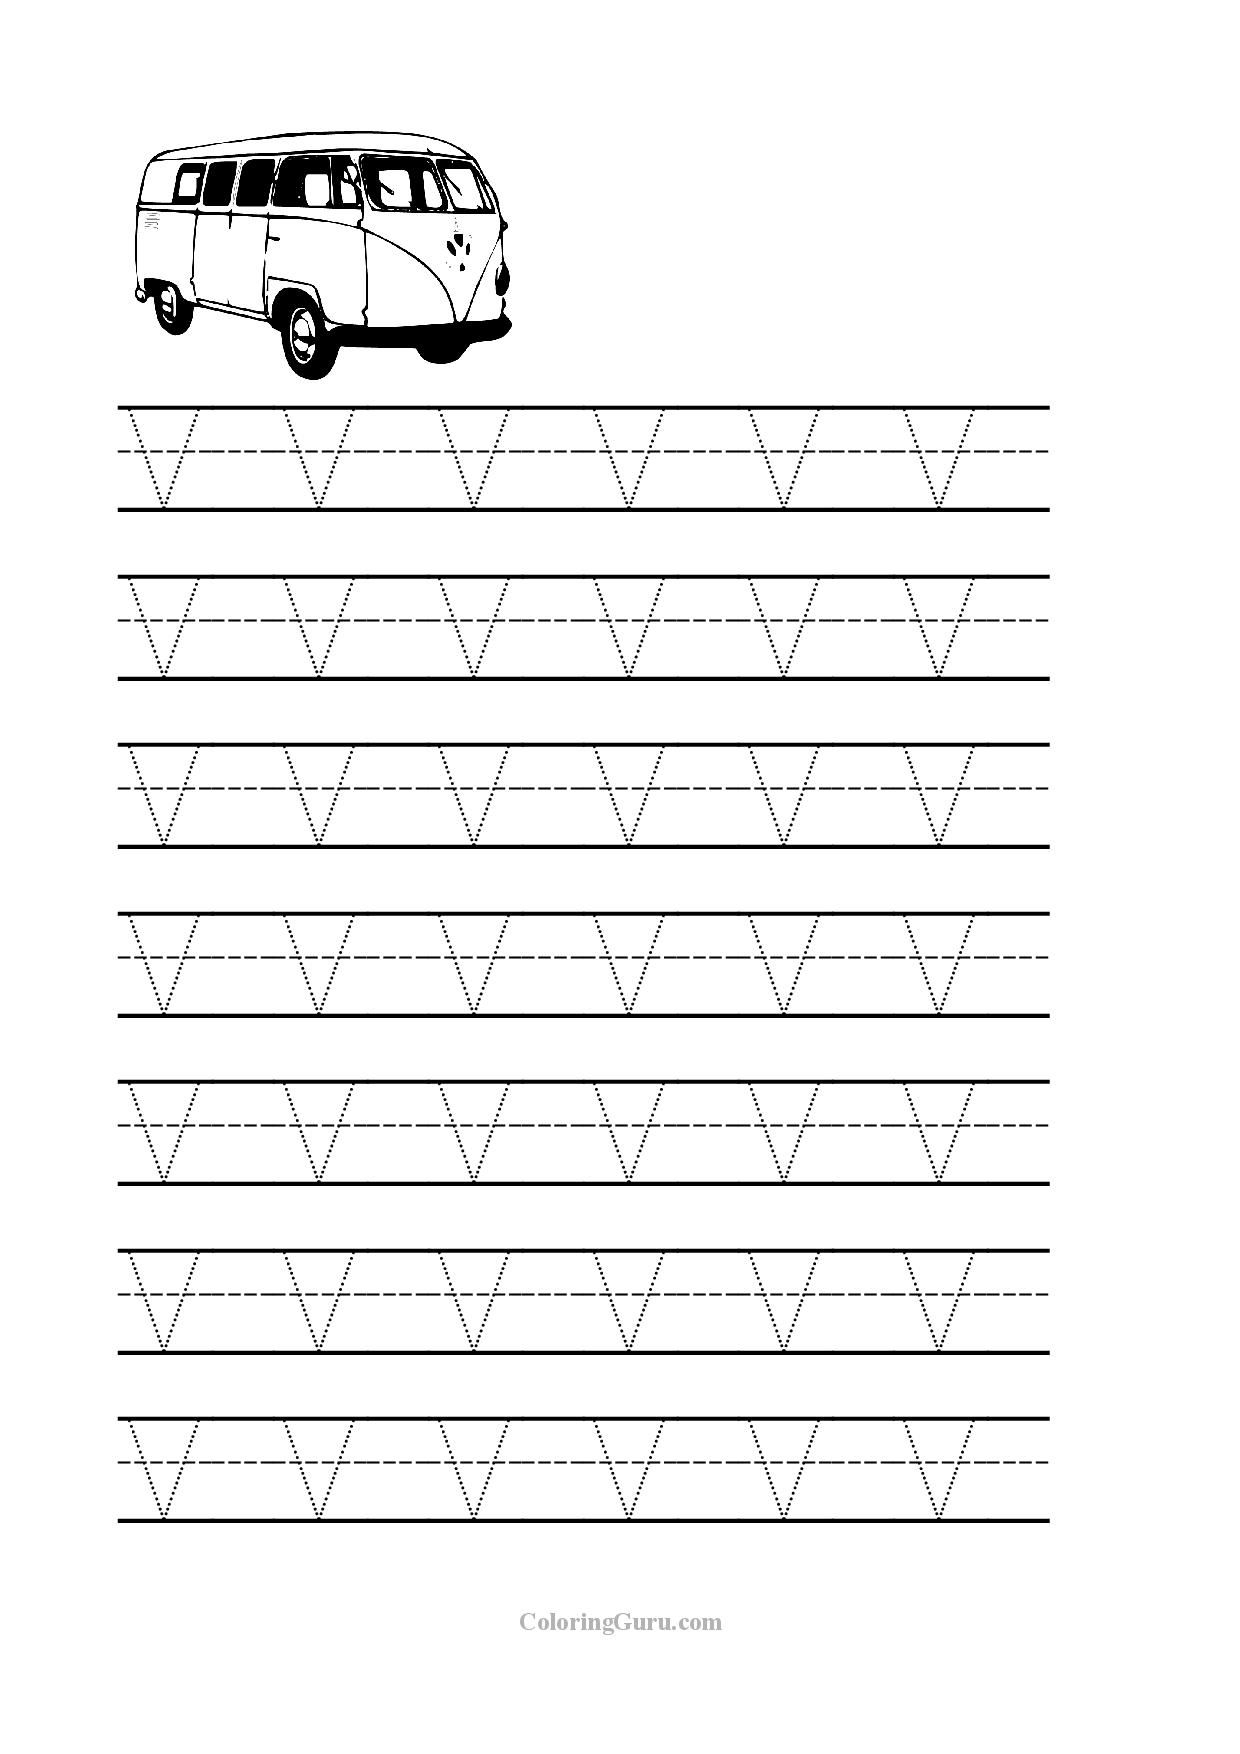 Free Printable Tracing Letter V Worksheets For Preschool pertaining to Letter Tracing V